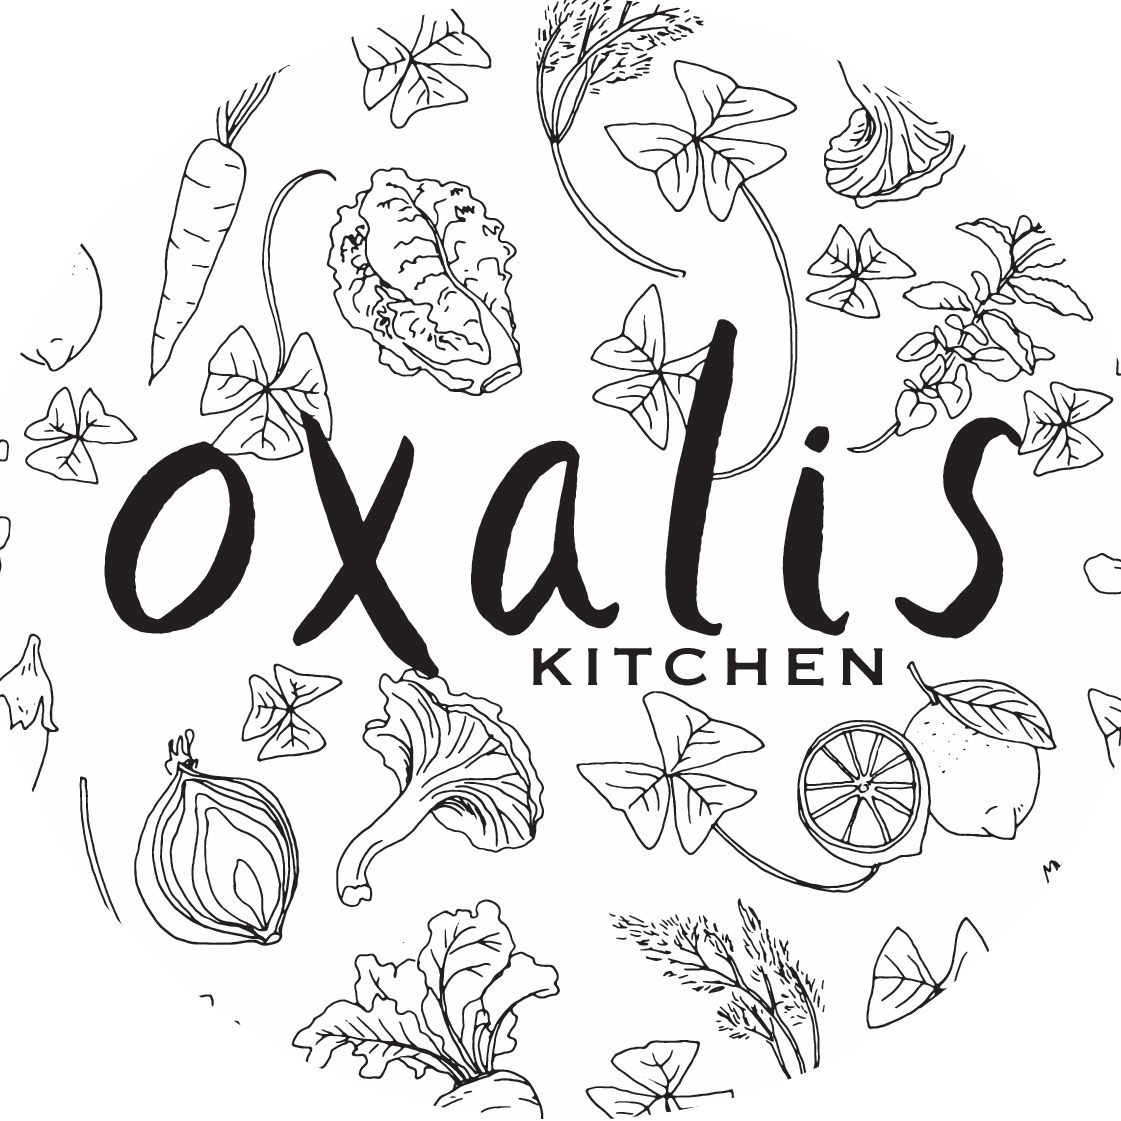 Oxalis Kitchen